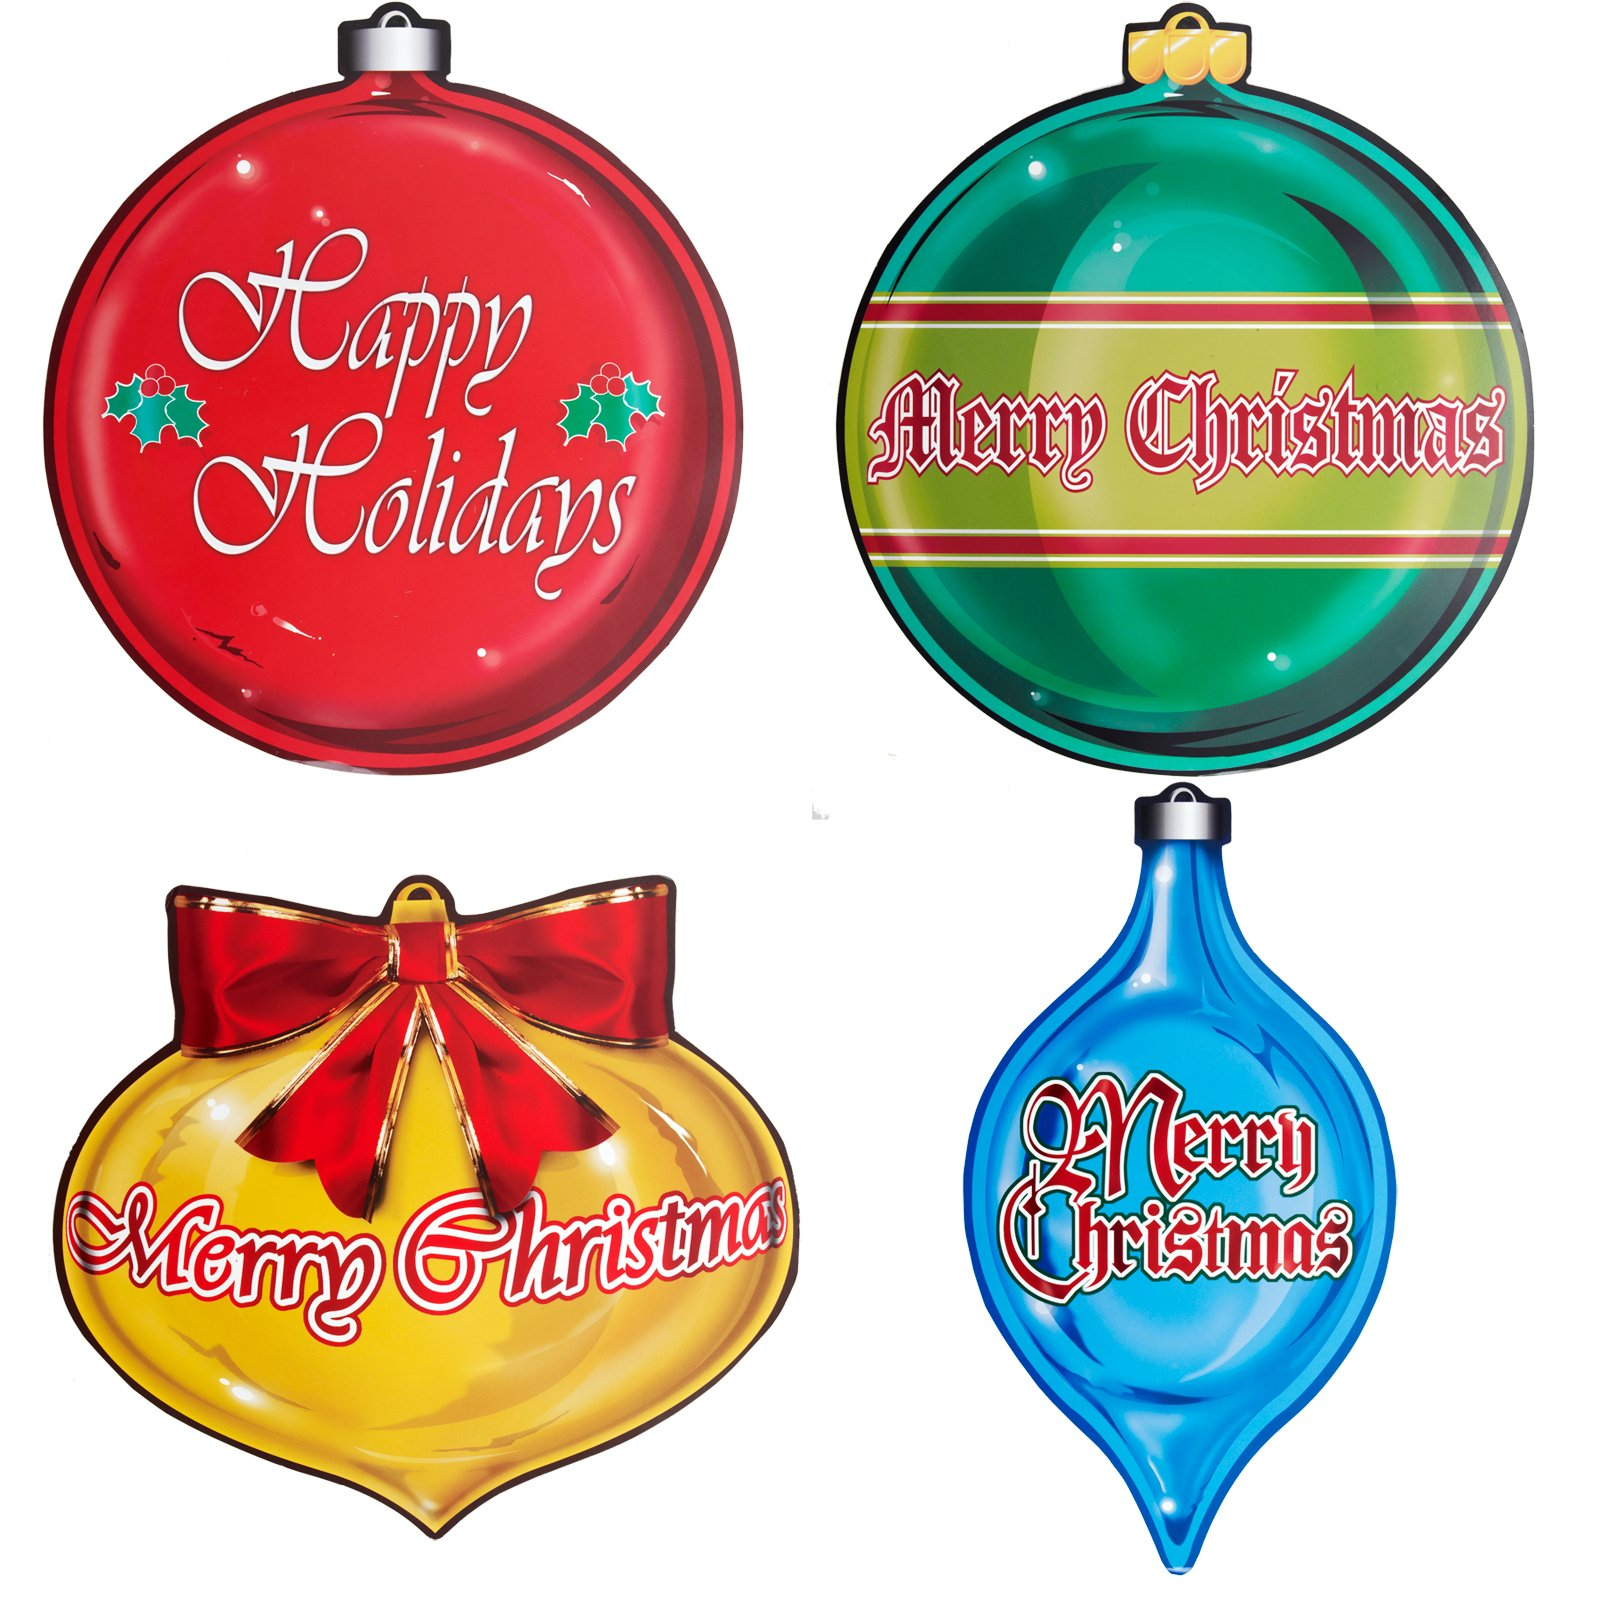 Christmas Ornament Pictures